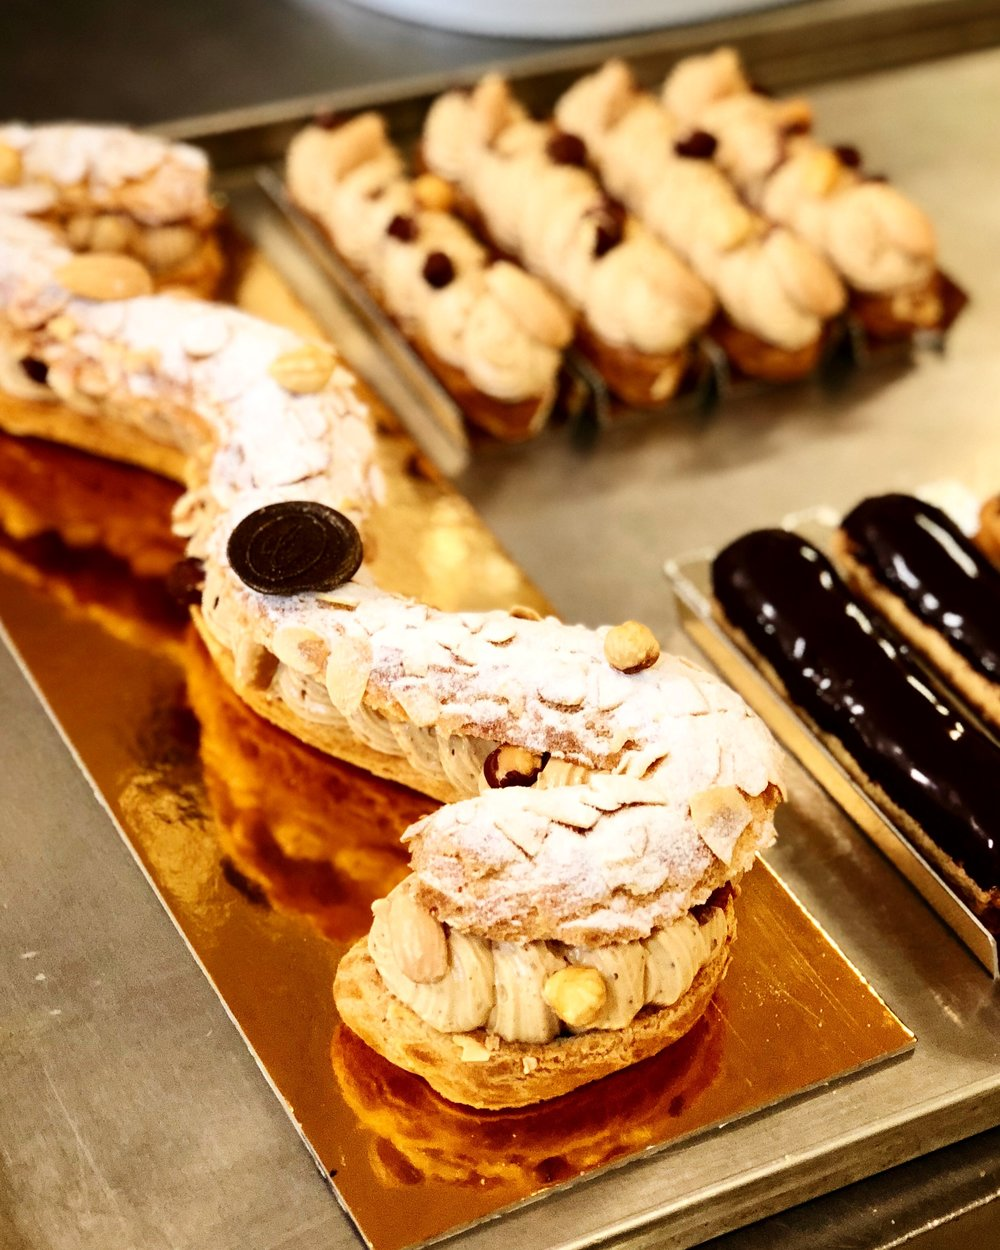 Large Paris Brest.jpg